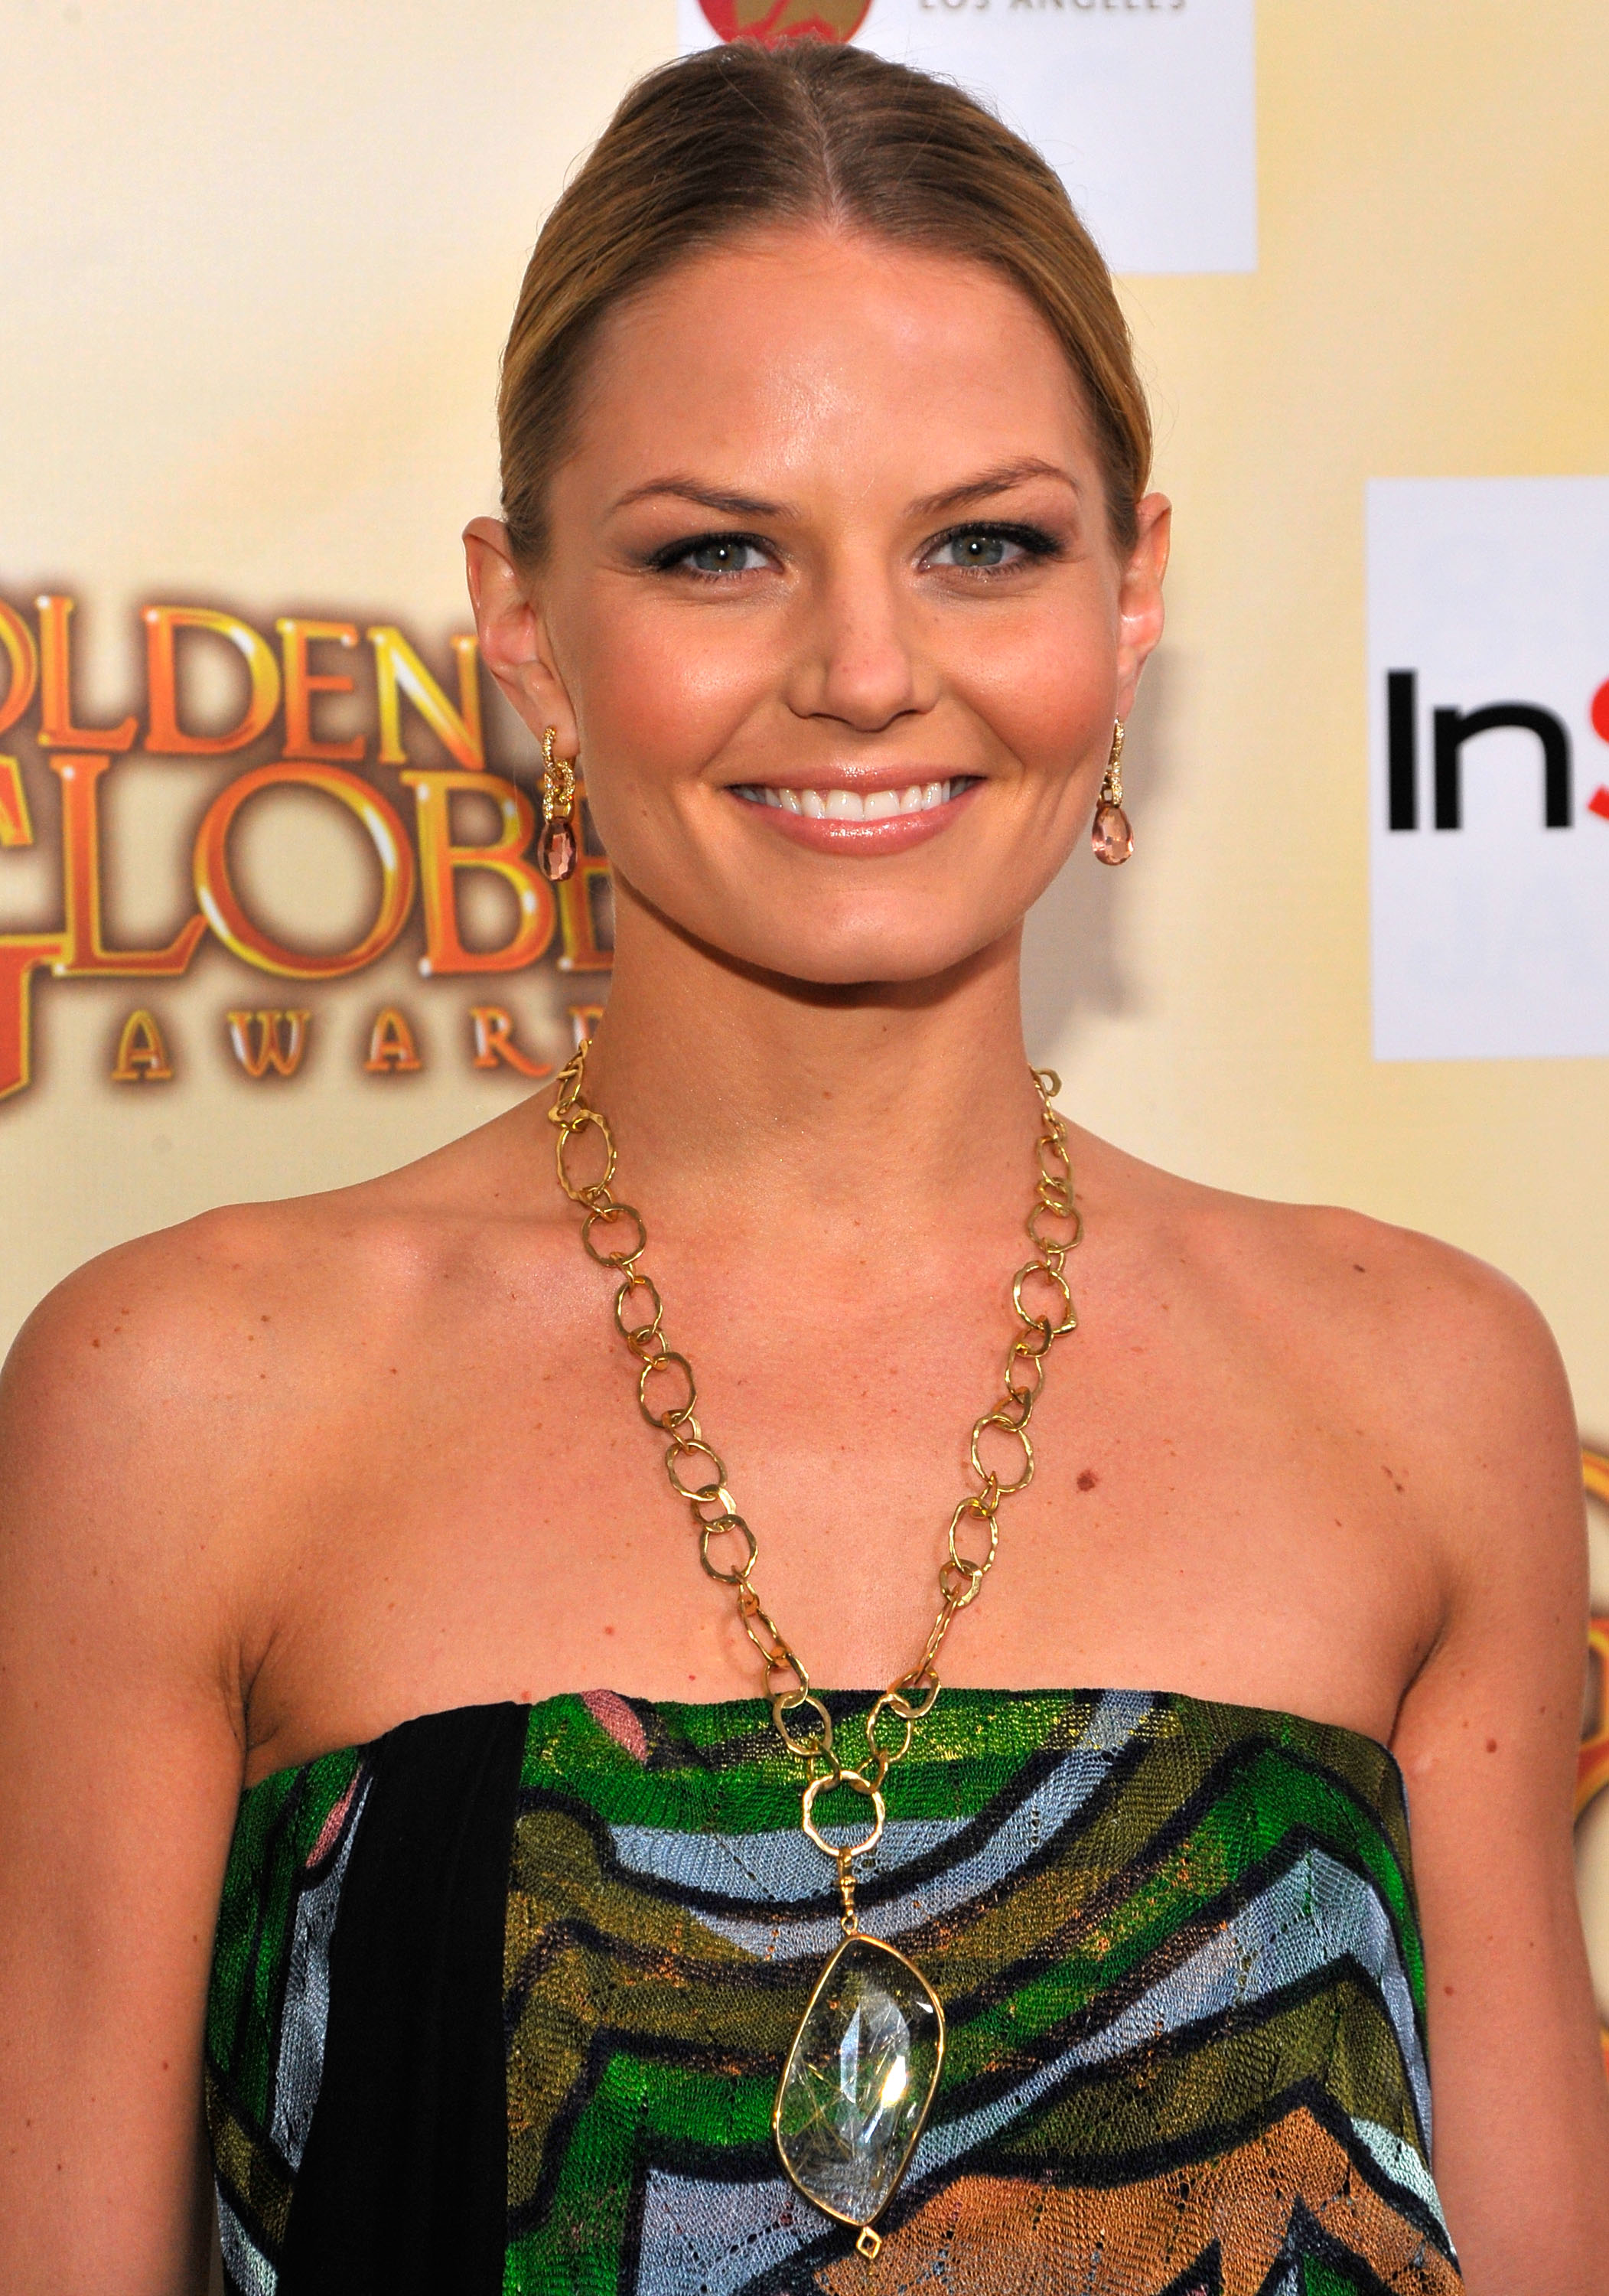 02012_Celebutopia-Jennifer_Morrison_arrives_at_the_Golden_Globe_Salute_To_Young_Hollywood-03_122_867lo.jpg